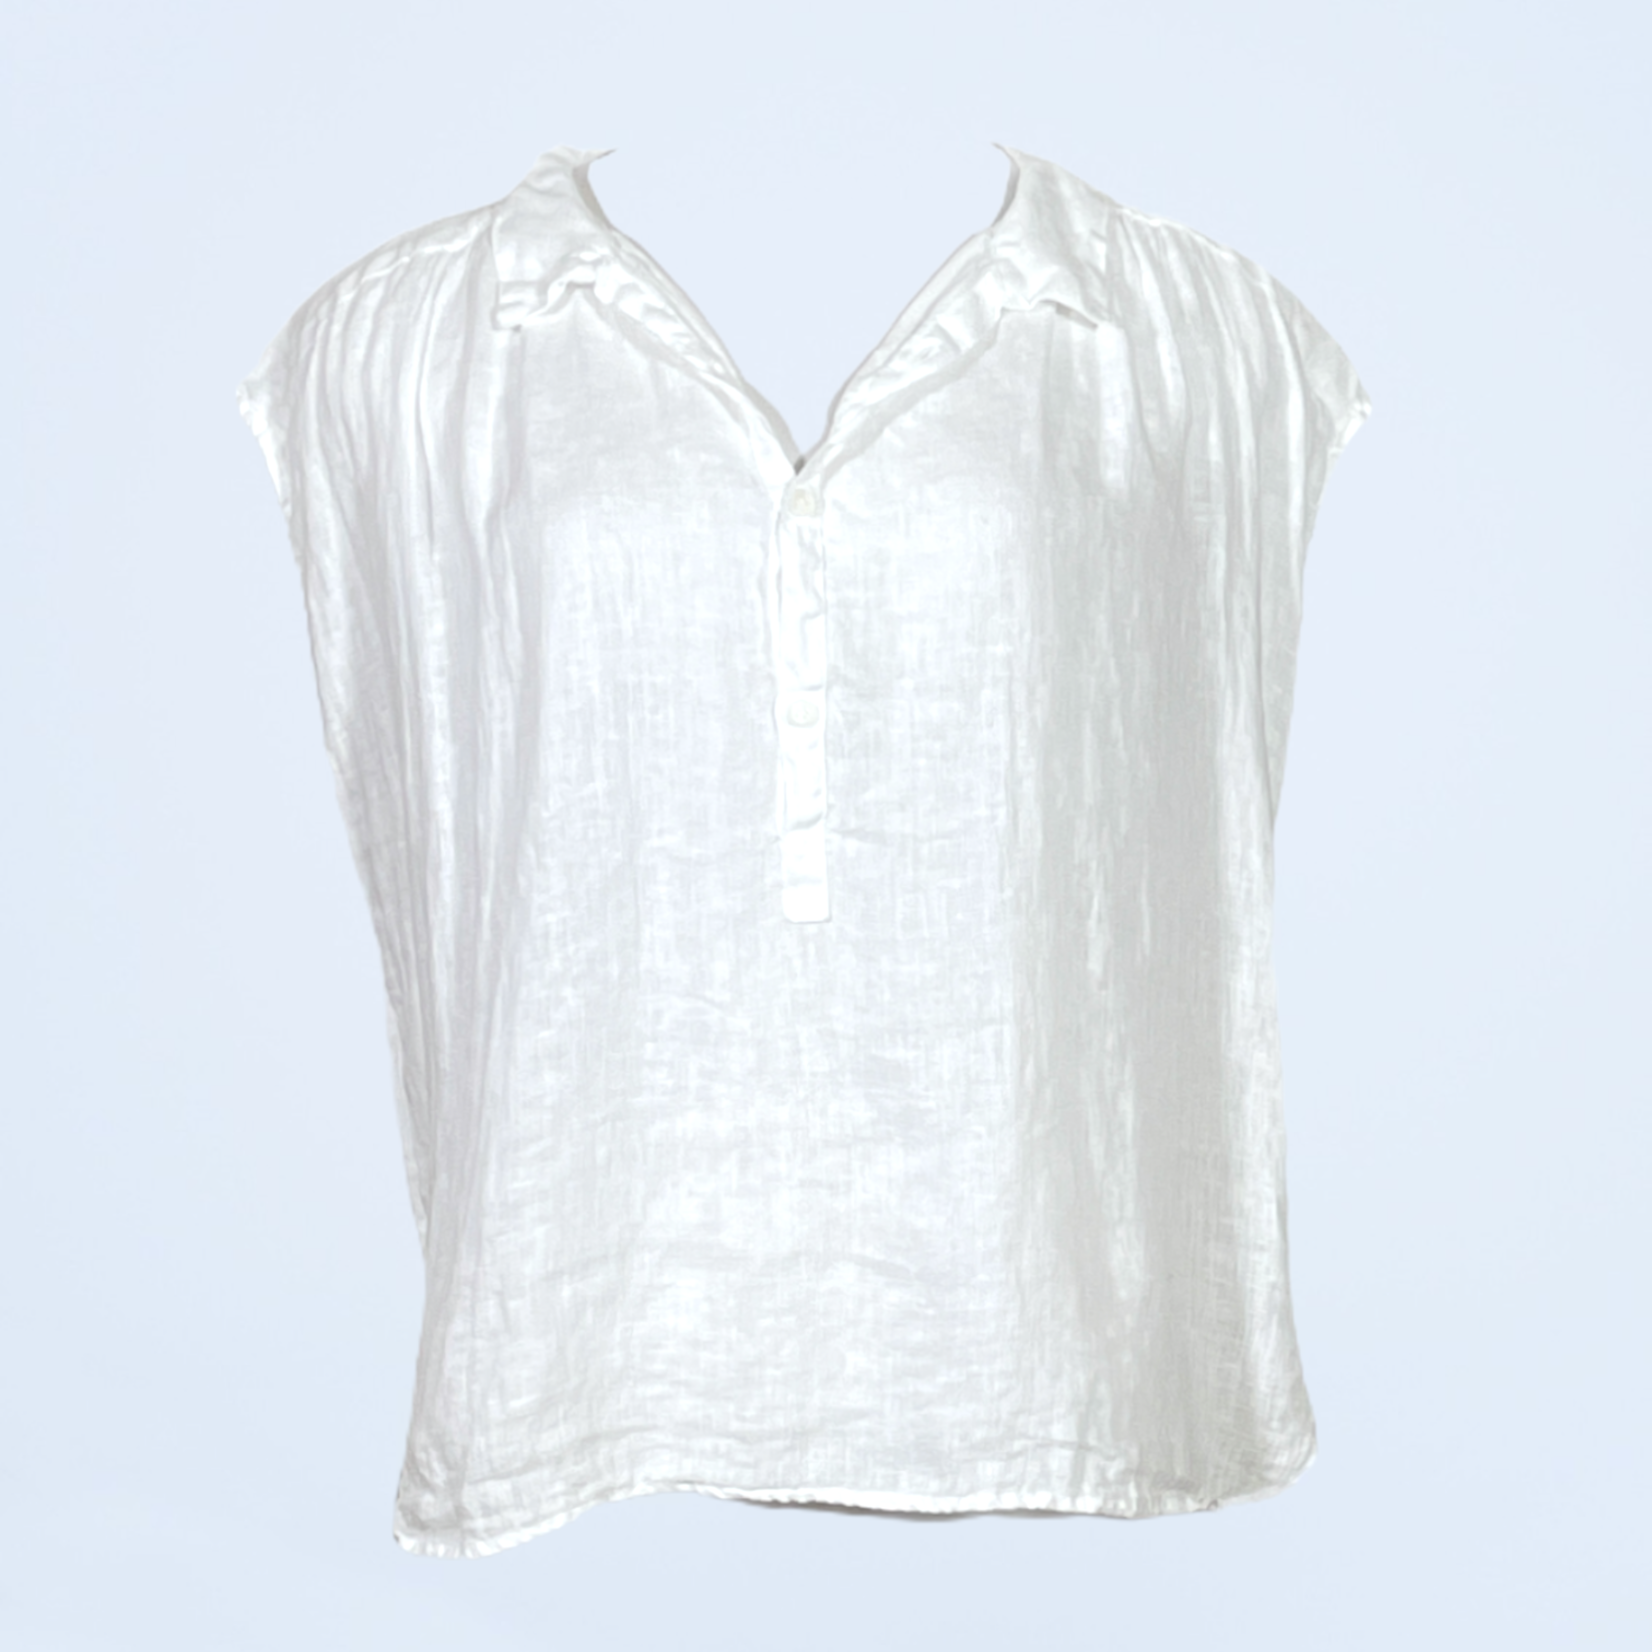 Claire Cap Sleeve Top with Collar